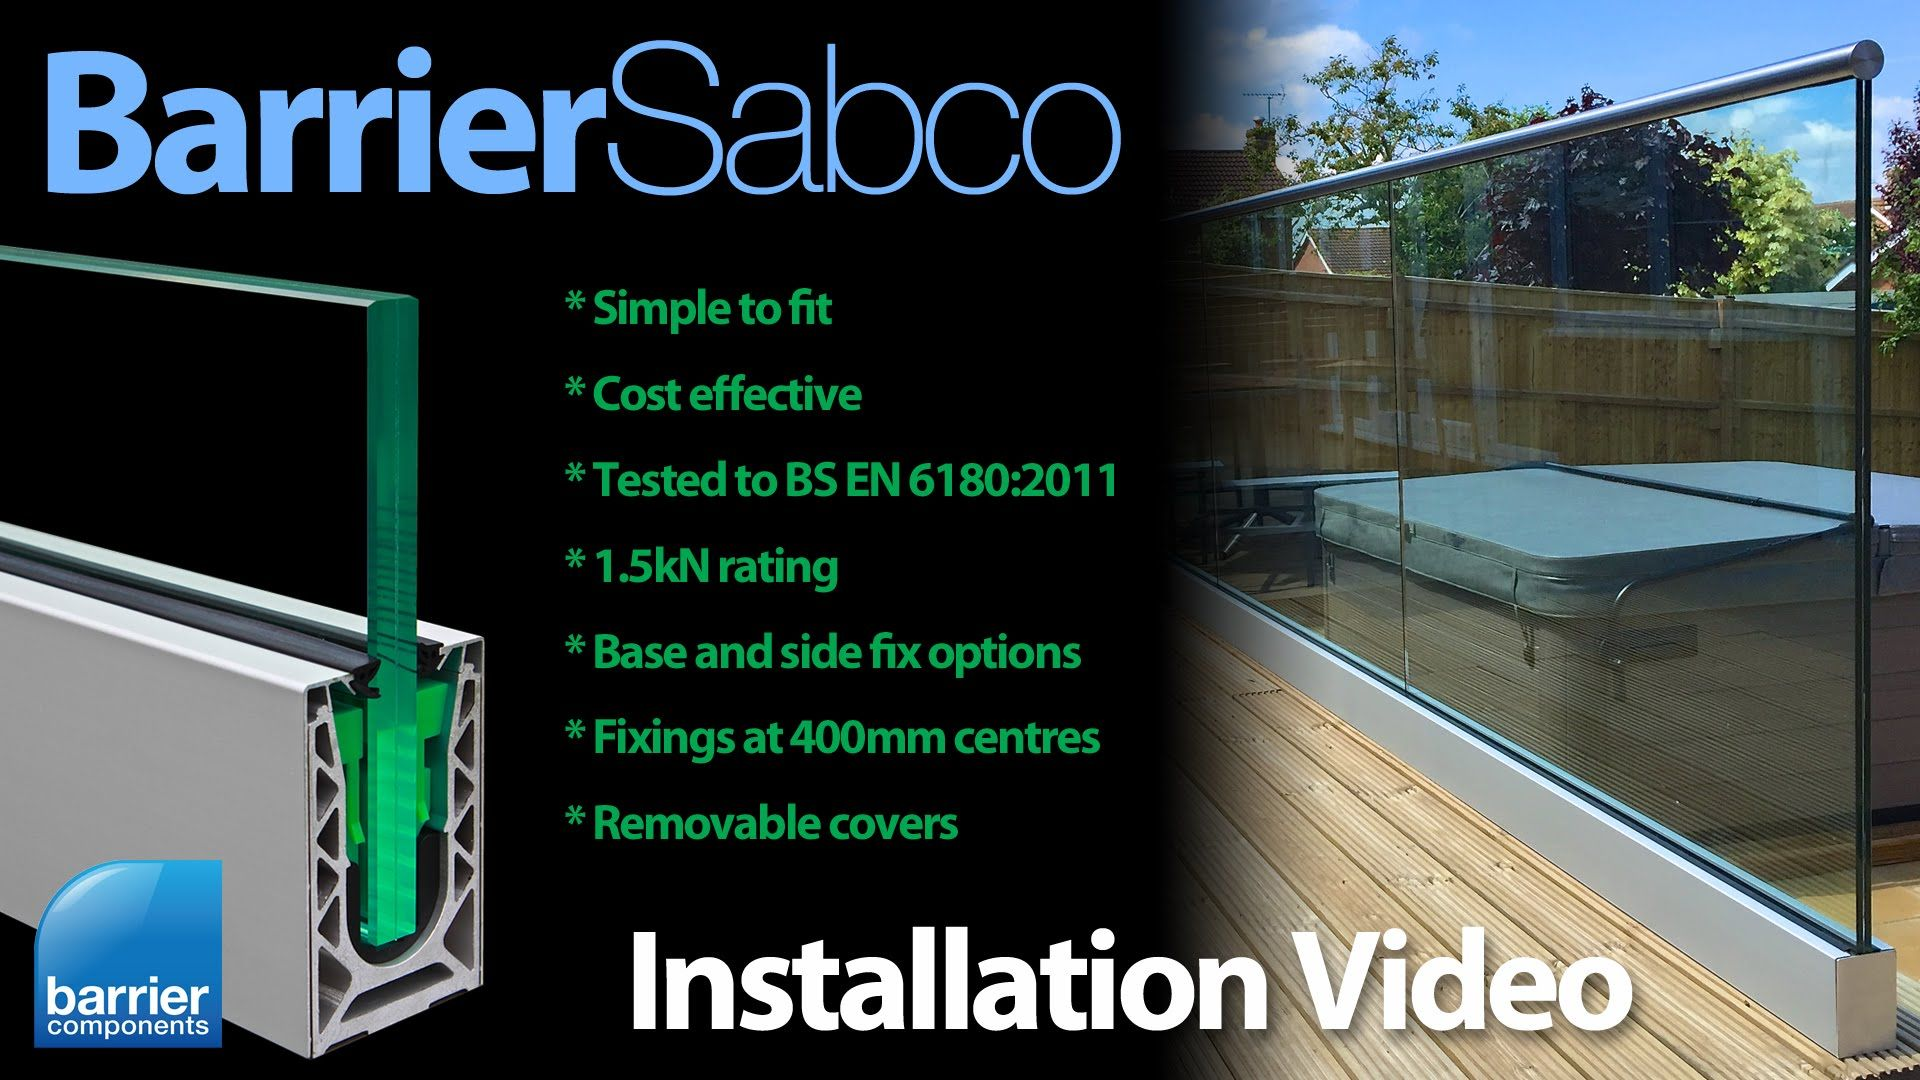 Barriersabco Is A Simple To Install, Cost Effective Glass Balustrade